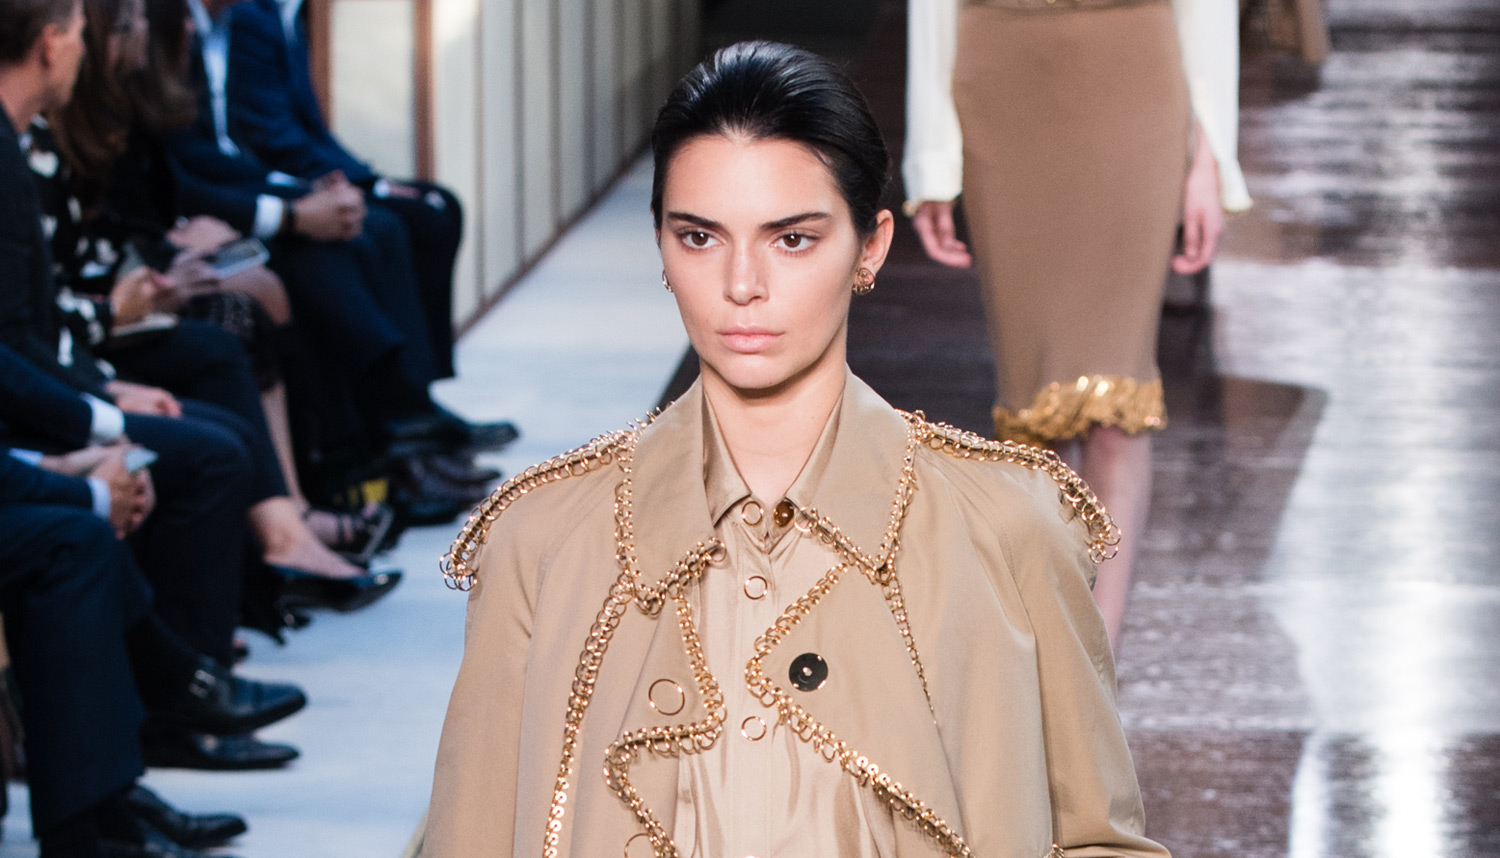 Kendall Jenner Returns to Modeling to Walk Burberry Runway | Kendall ...